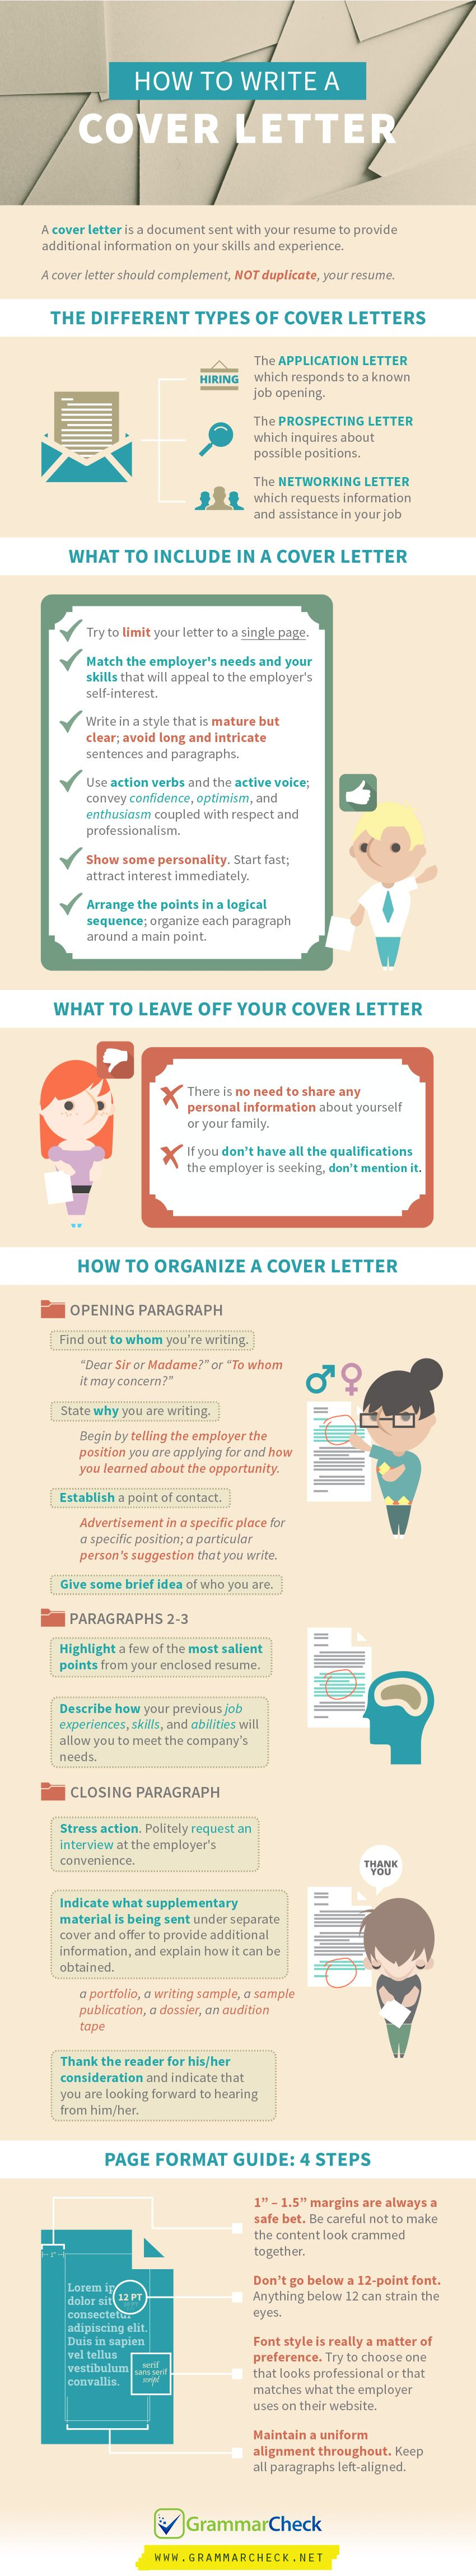 How to Write a Cover Letter – Step by Step (Infographic ...